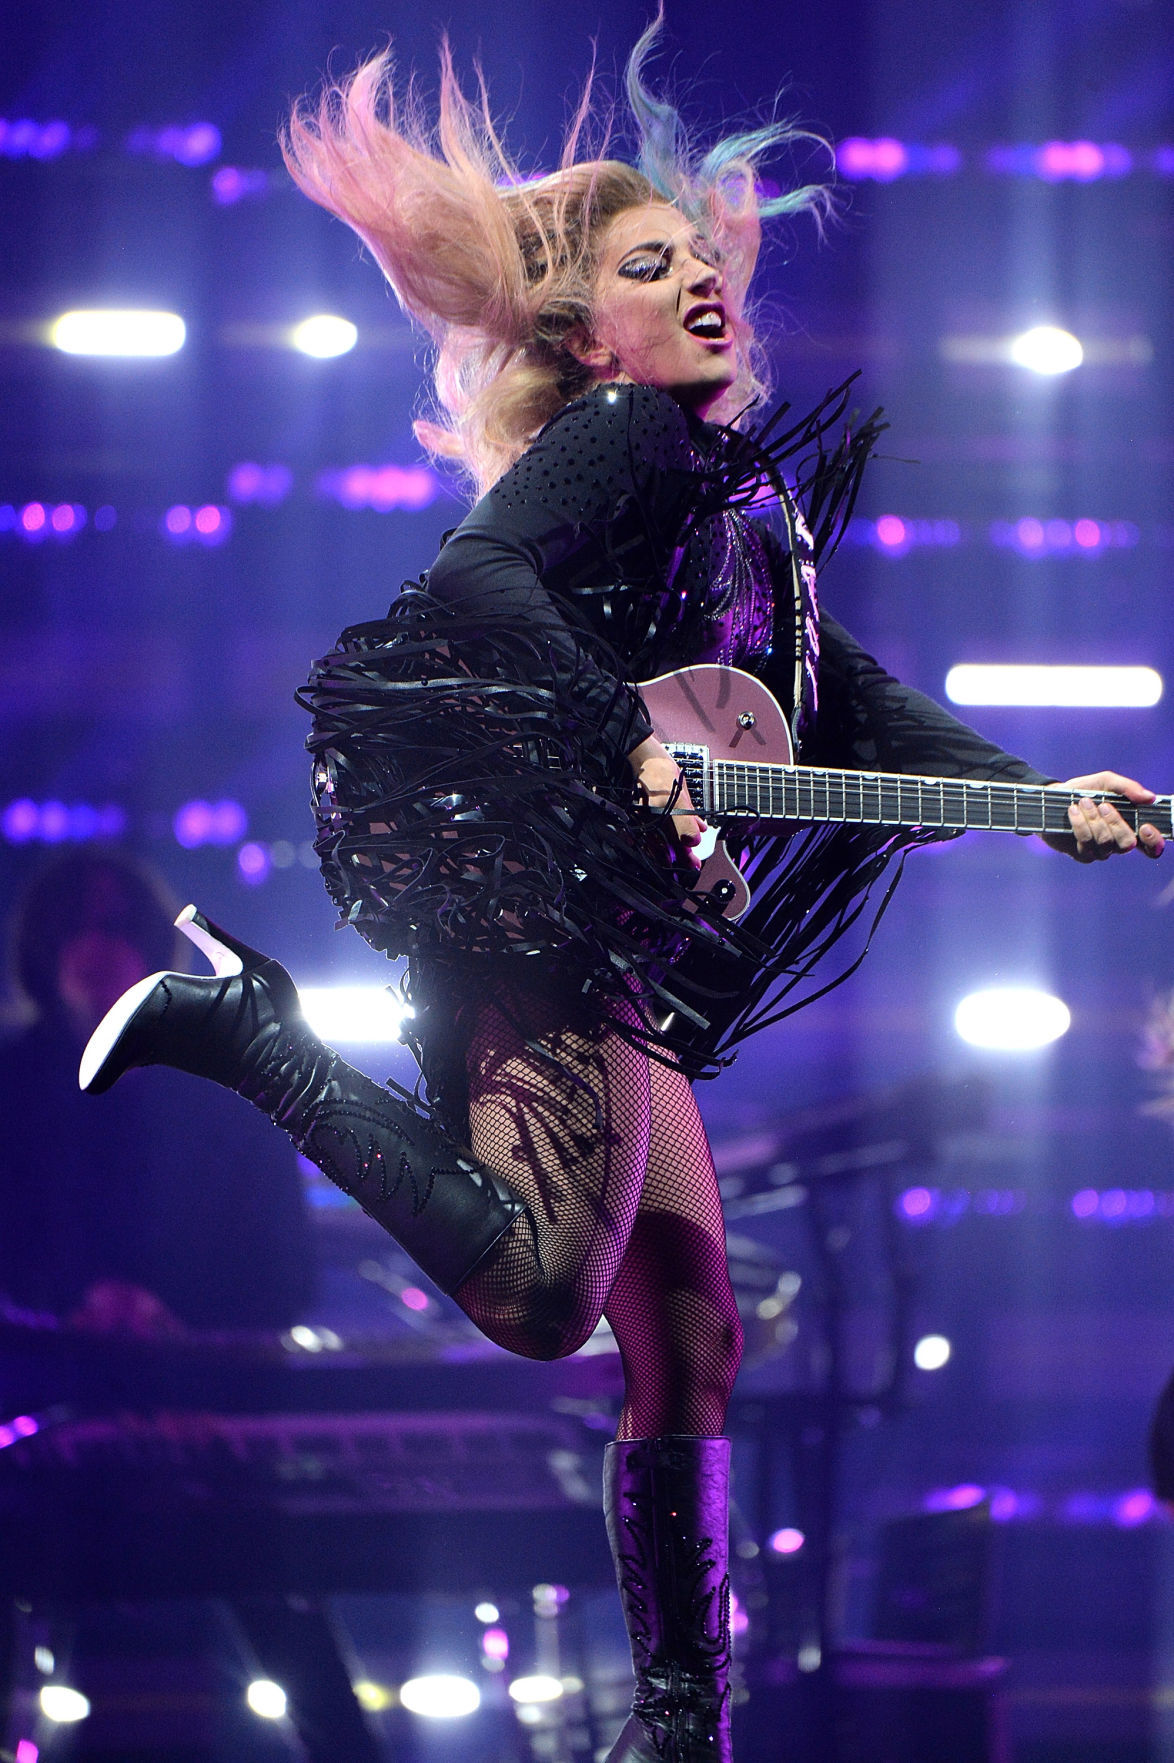 Lady Gaga S Concert Calls For Celebration Resolve In The Face Of Sadness Concert Reviews Stltoday Com